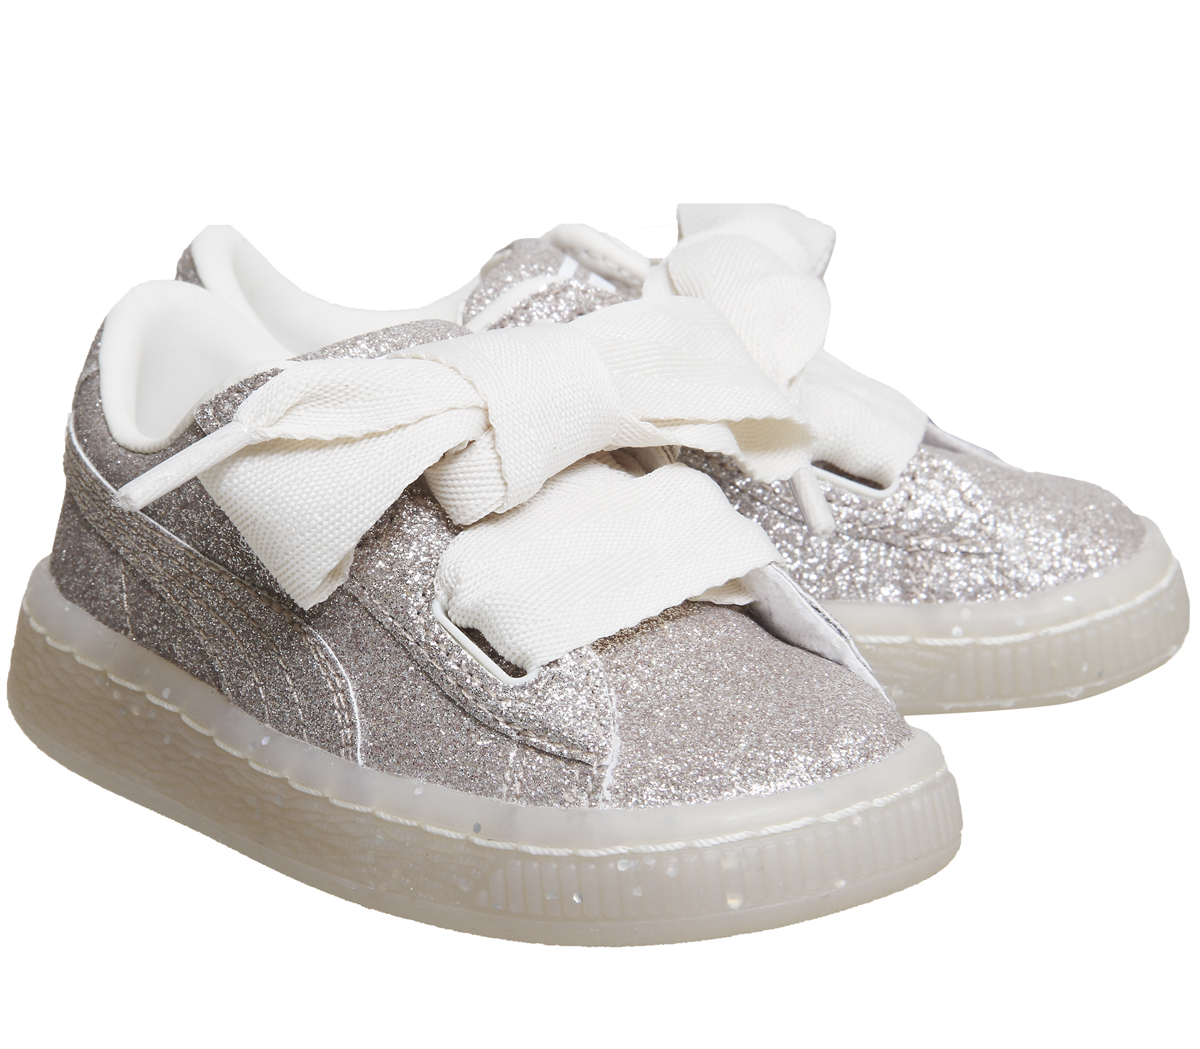 newest 2e26e 976f1 Details about Kids Puma Basket Heart Inf Eggnog Glitter Exclusive Kids